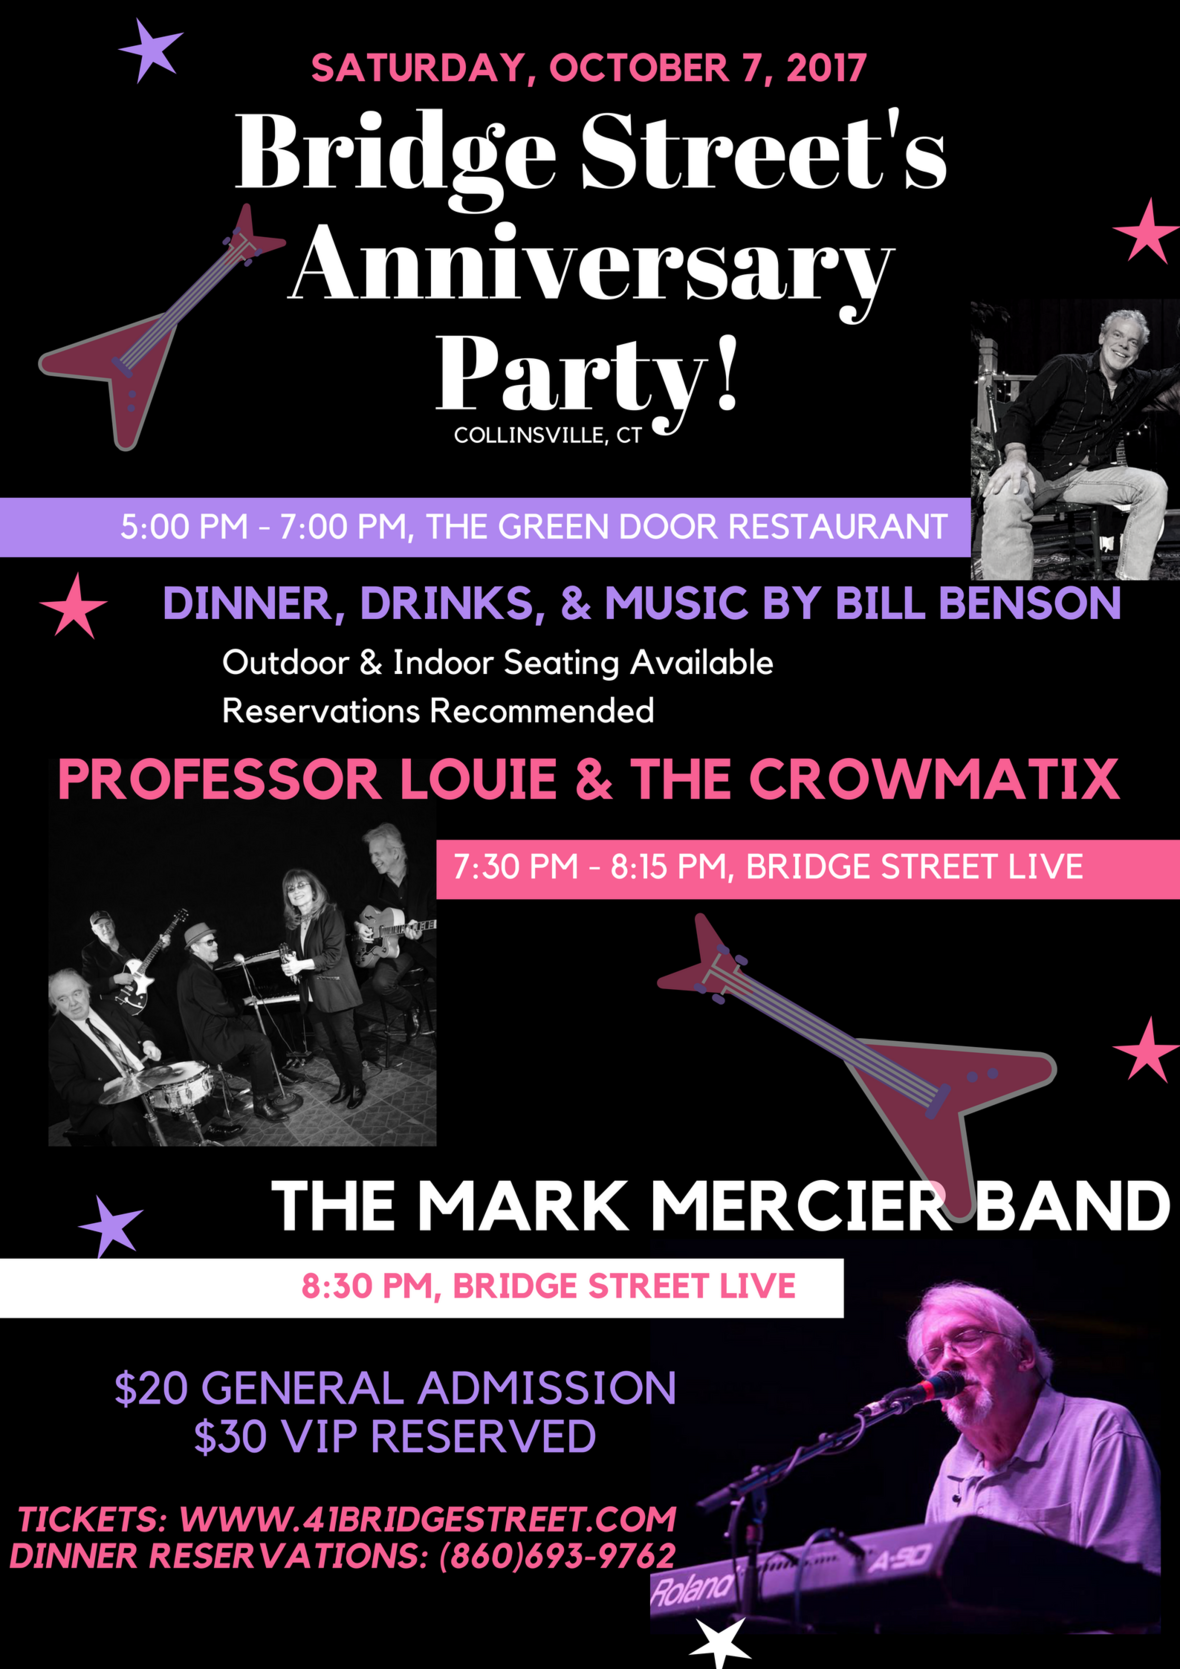 2017 Anniversary Party poster